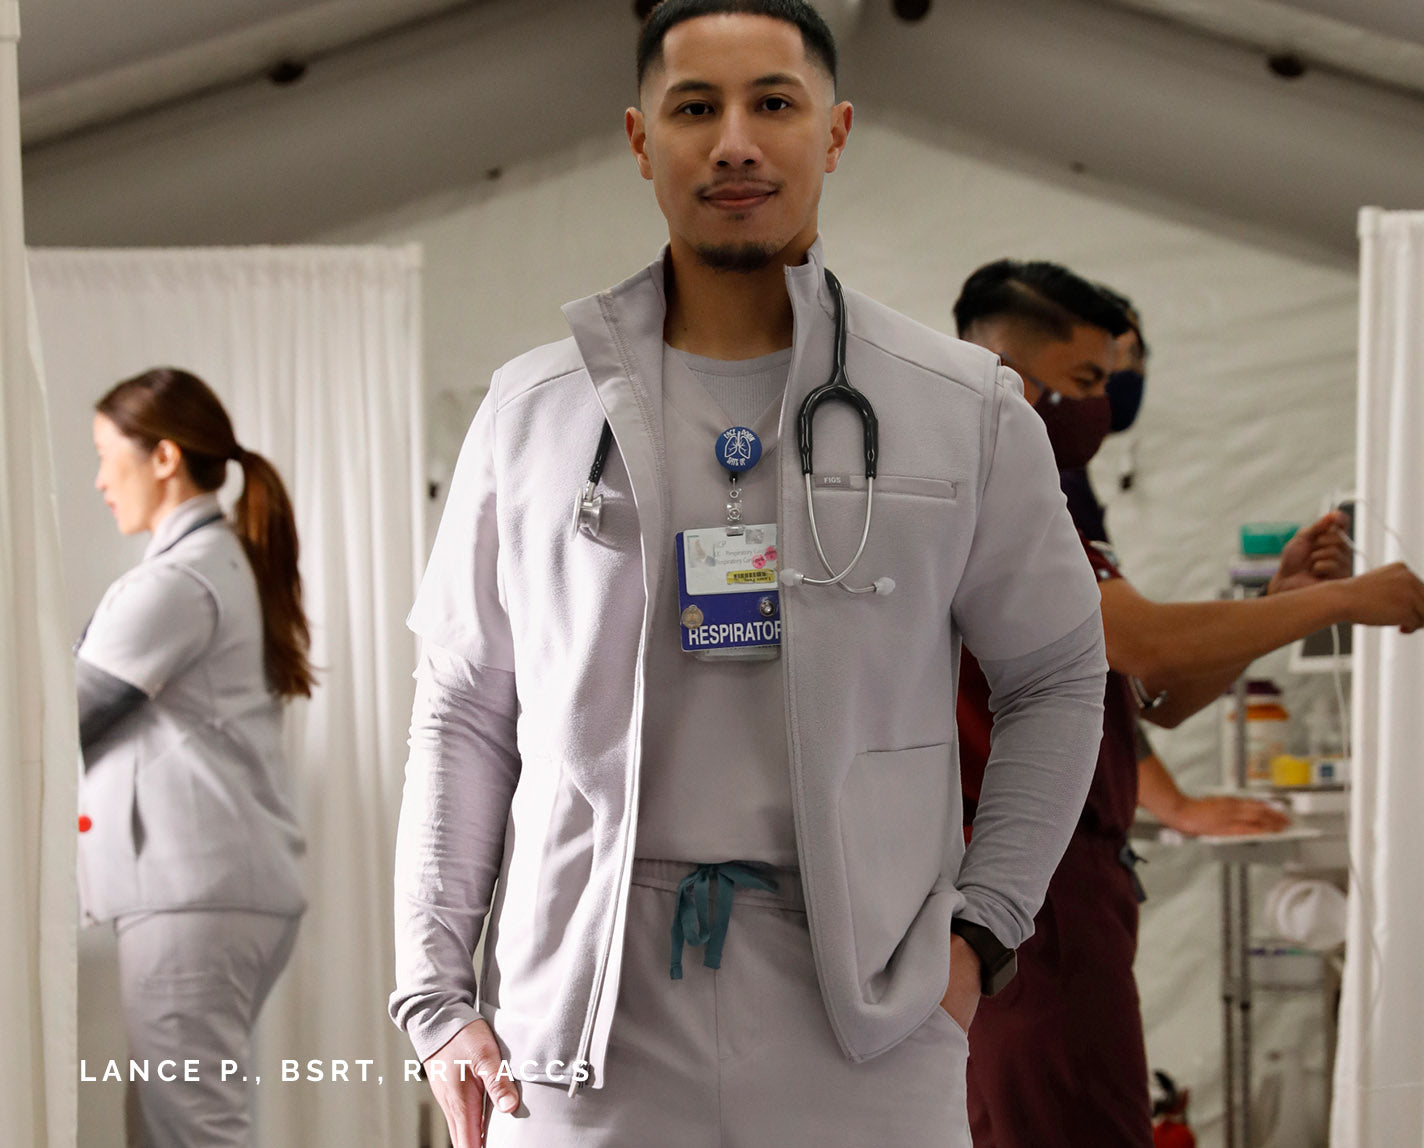 Clear eyes. Warm Core. Can't lose. Our full-zip On-Shift Fleece Vest keeps your core warm without limiting your range of motion. Plus, it features a contrasting front panel and back yoke made from our proprietary FIONx fabric so that it matches your scrubs perfectly.